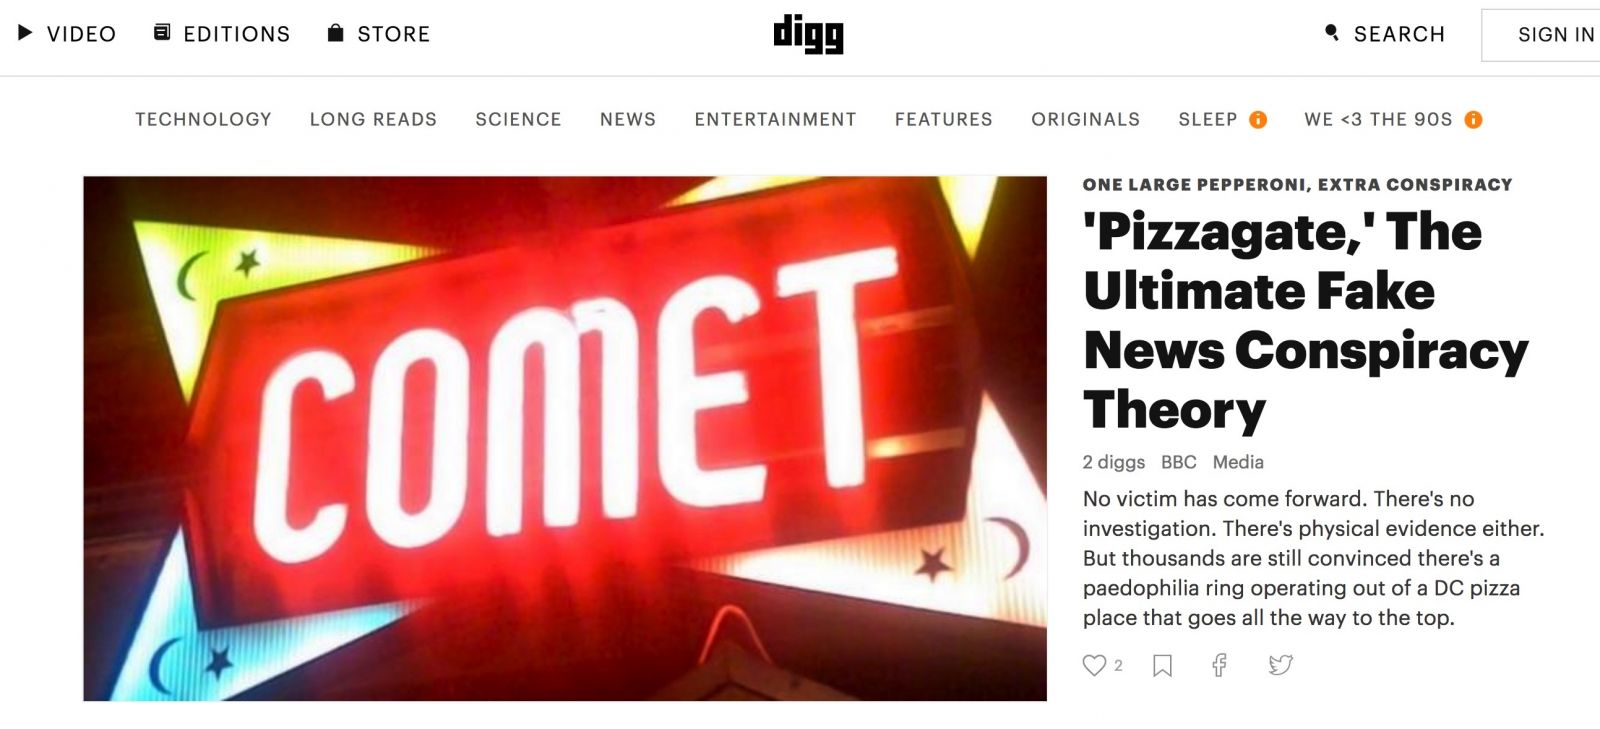 36-digg_pizzagate